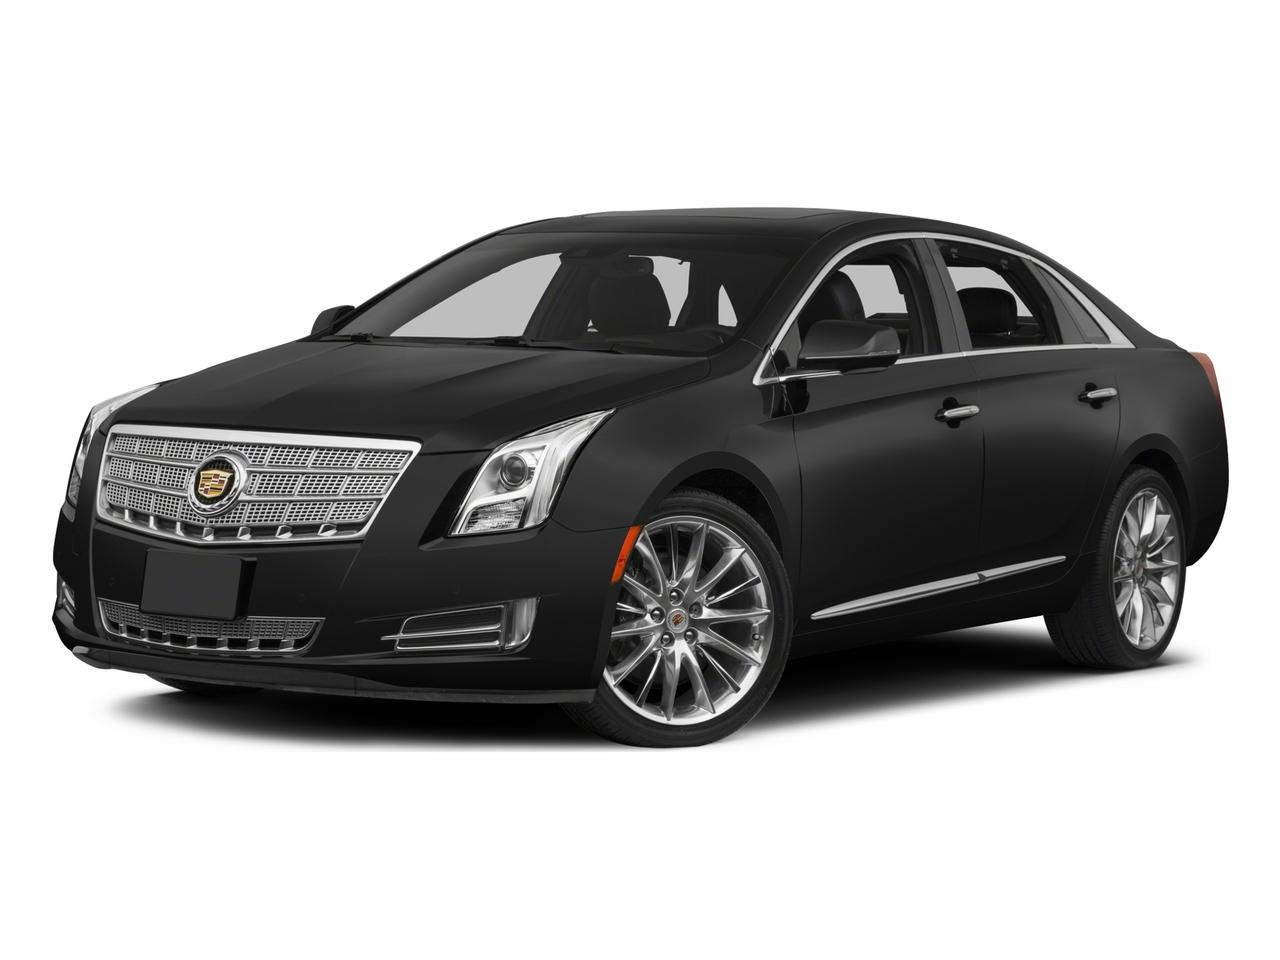 2015 Cadillac XTS Vehicle Photo in Nashua, NH 03060